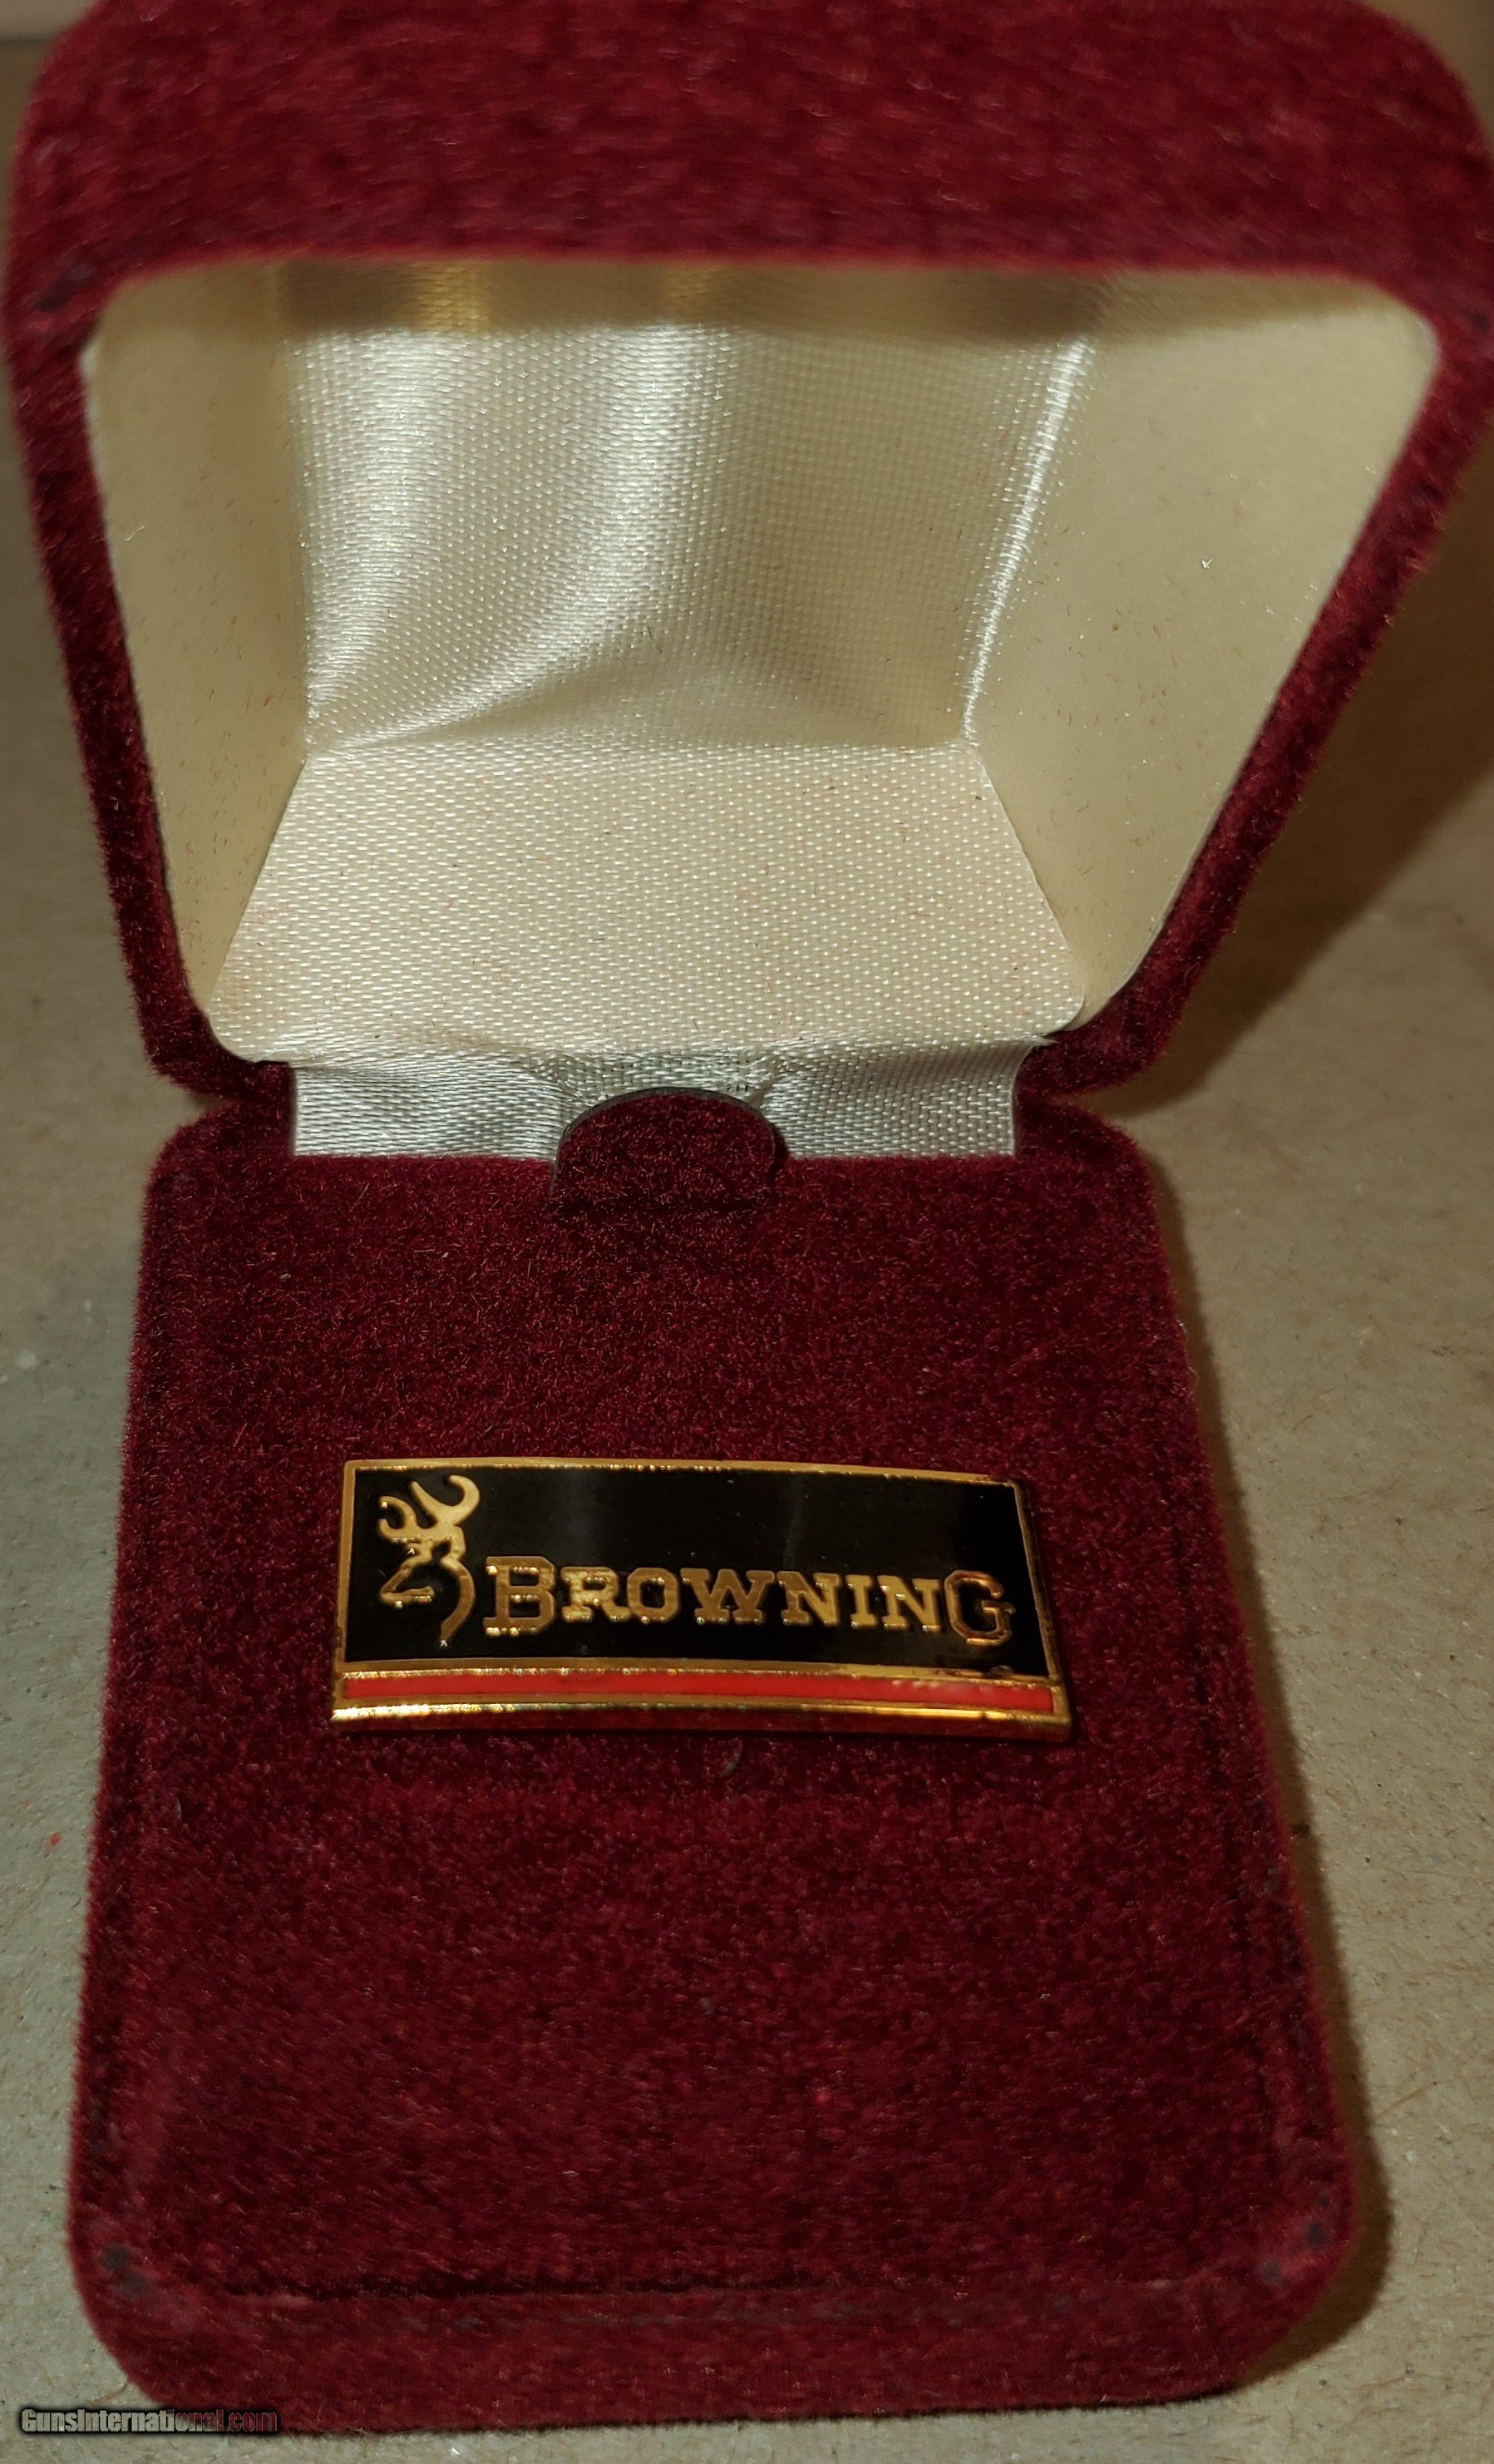 Browning Firearms Hat Lapel Pin